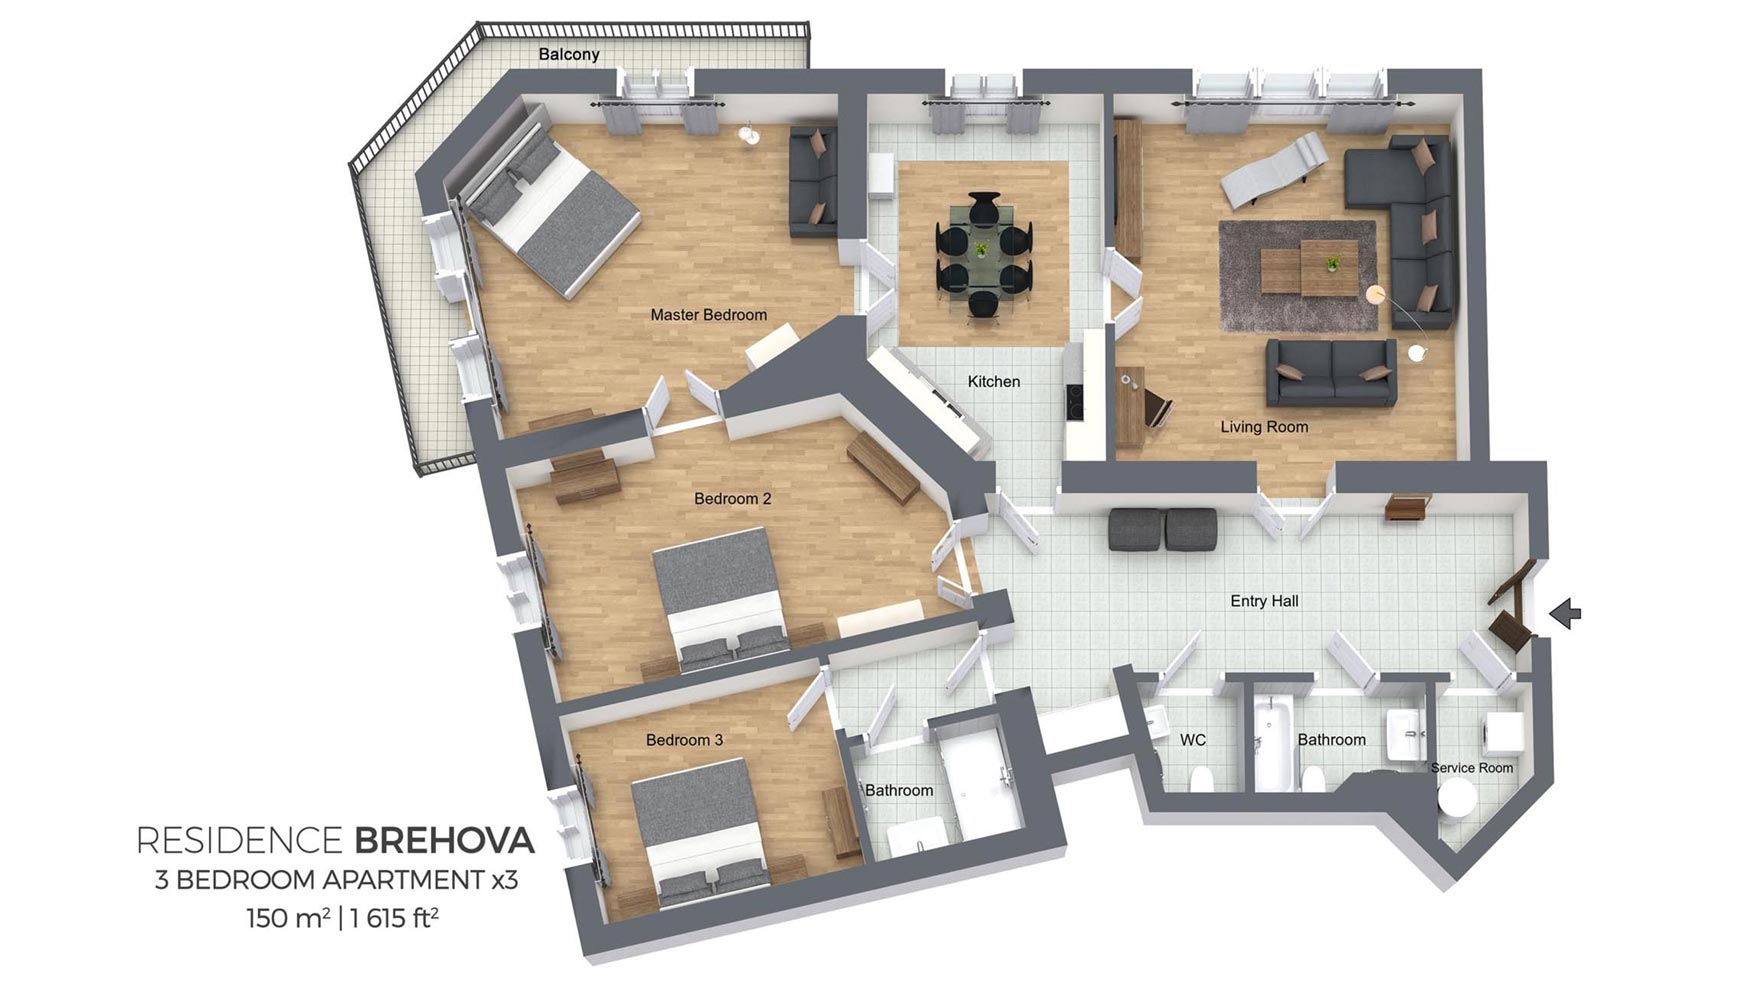 Floorplan Of A Three Bedroom Apartment In Residence Brehova